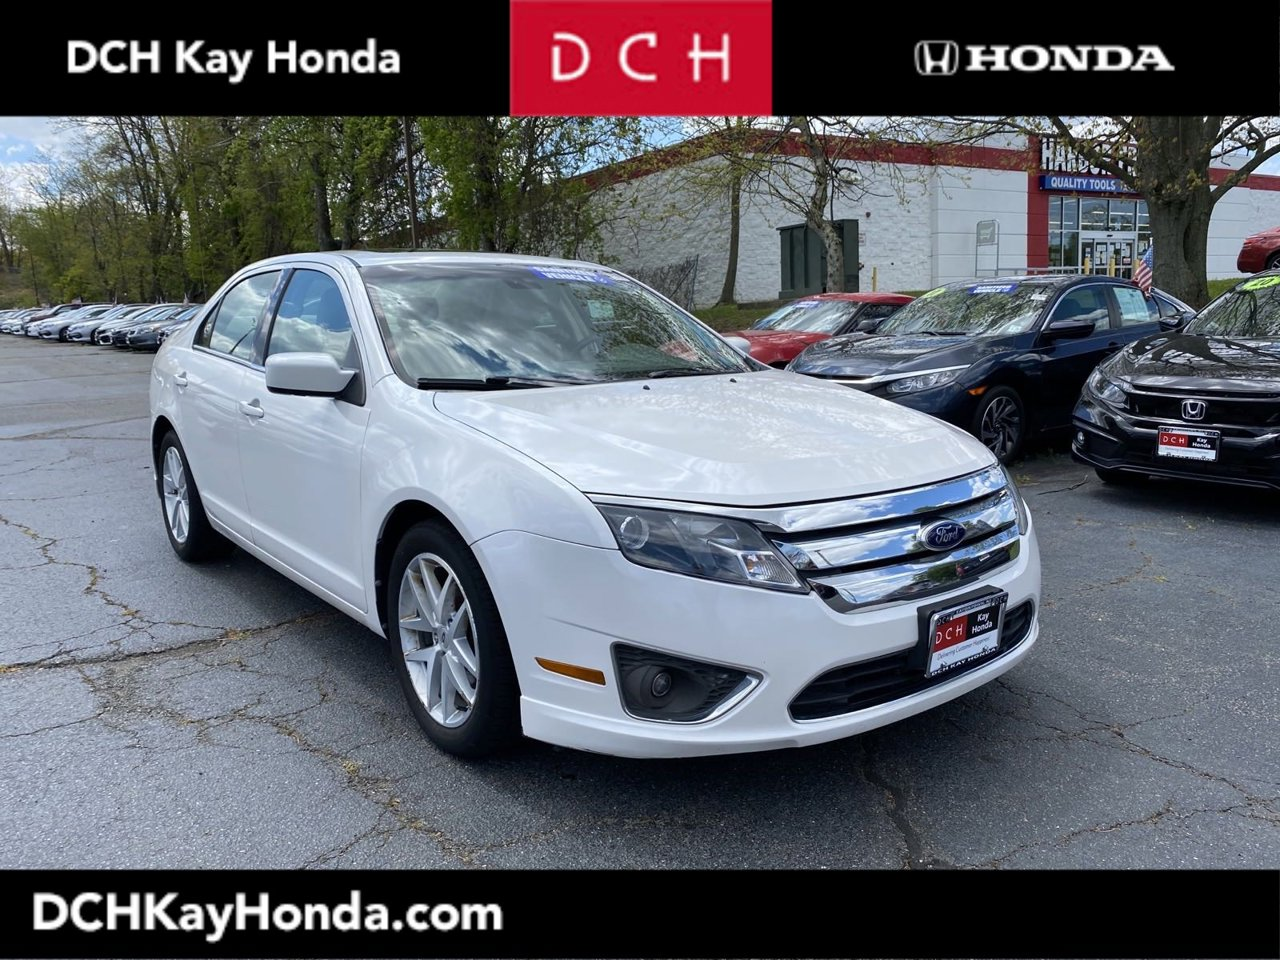 Used 2012 Ford Fusion in Eatontown, NJ